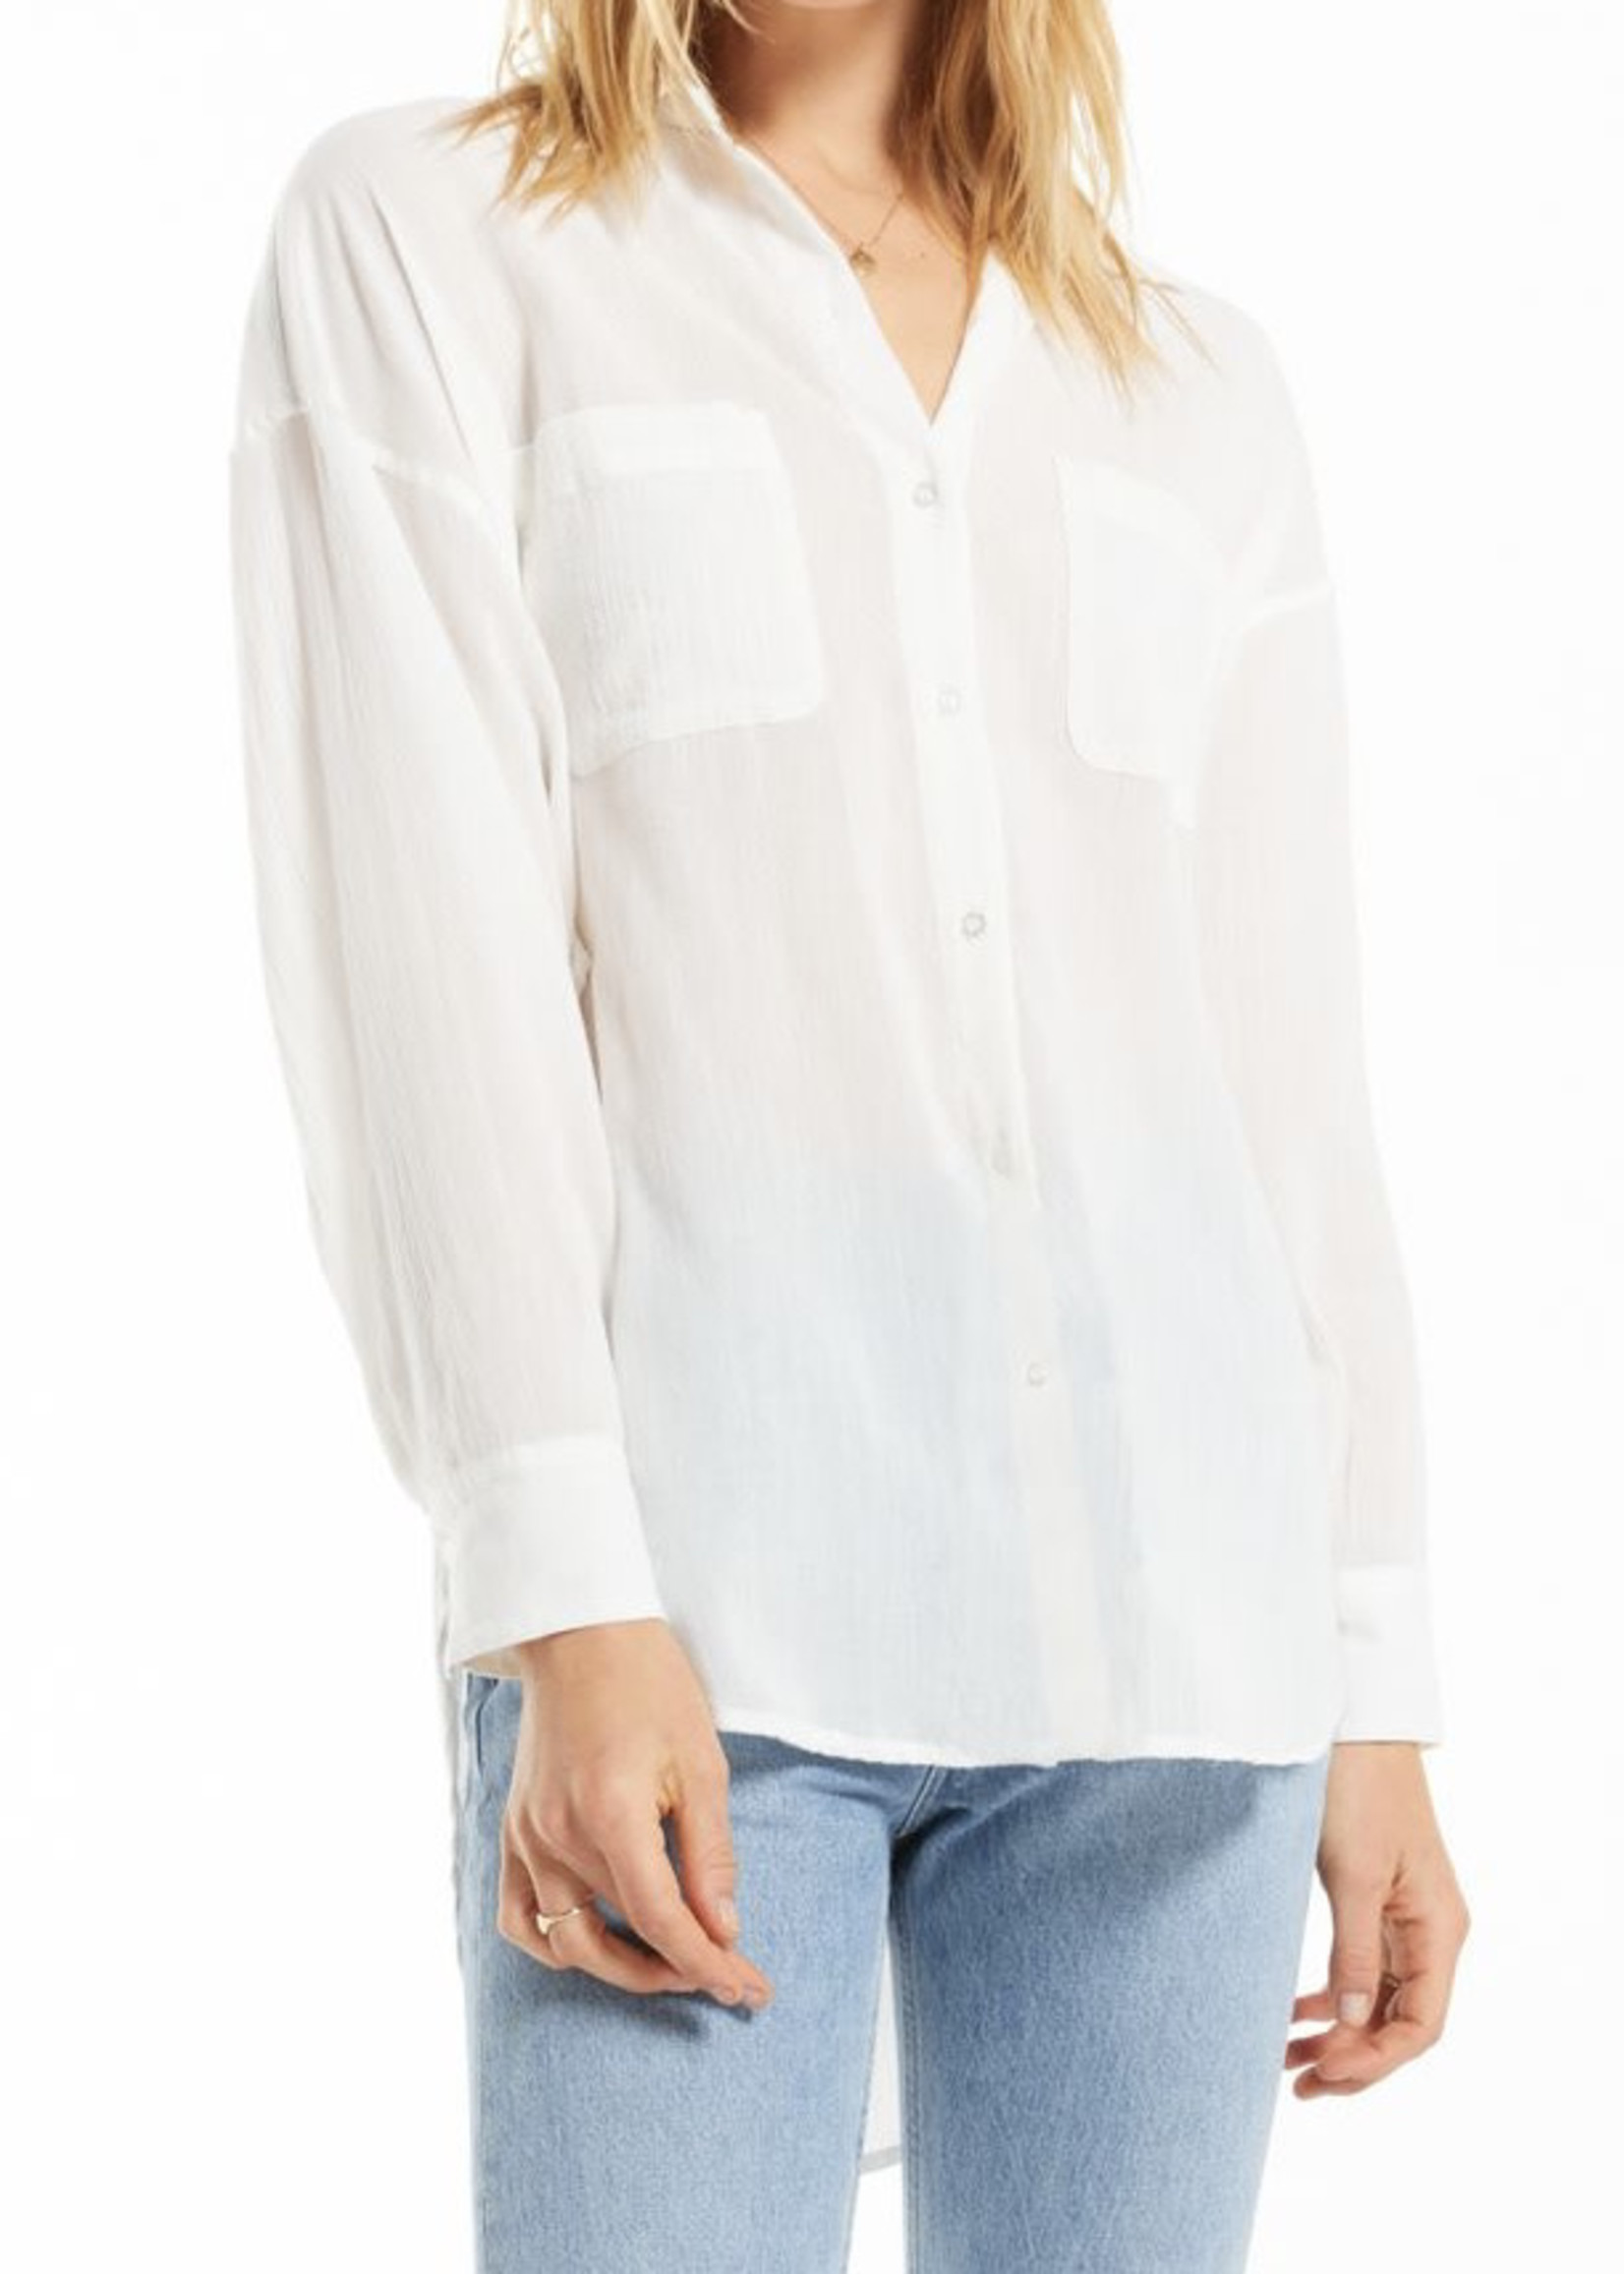 Z Supply ZS - Lalo Button Up Top